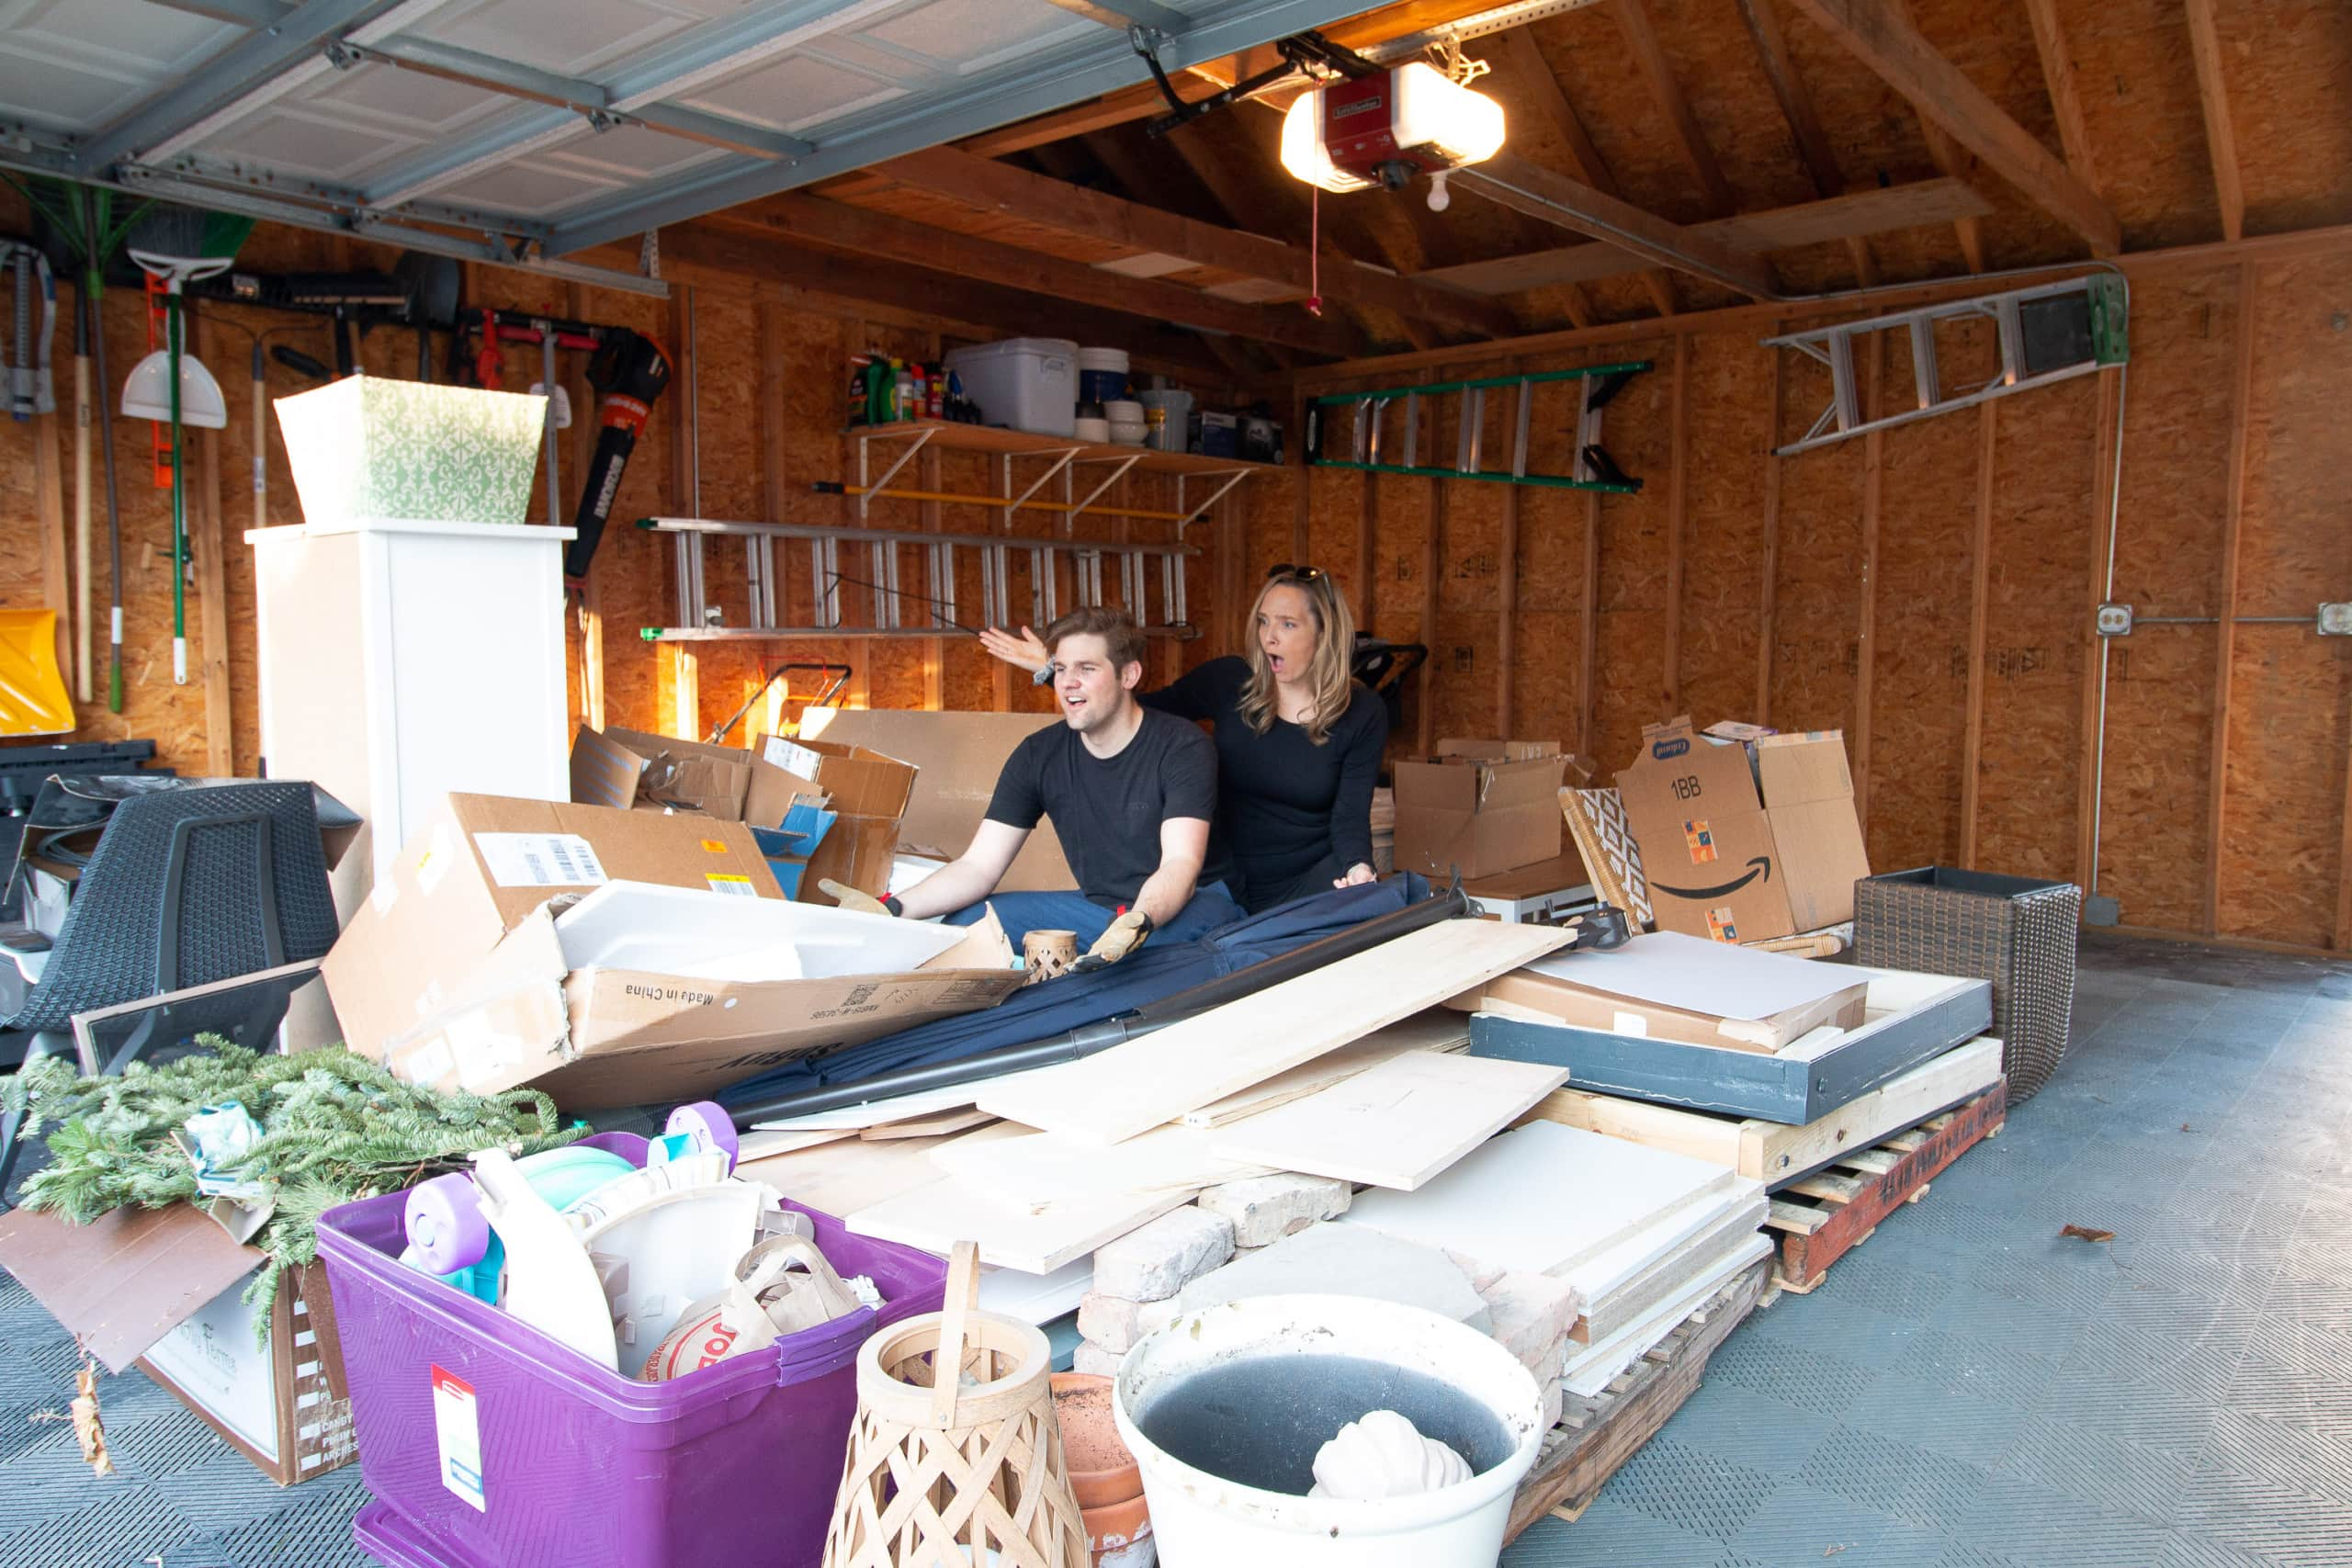 Our very full garage of junk